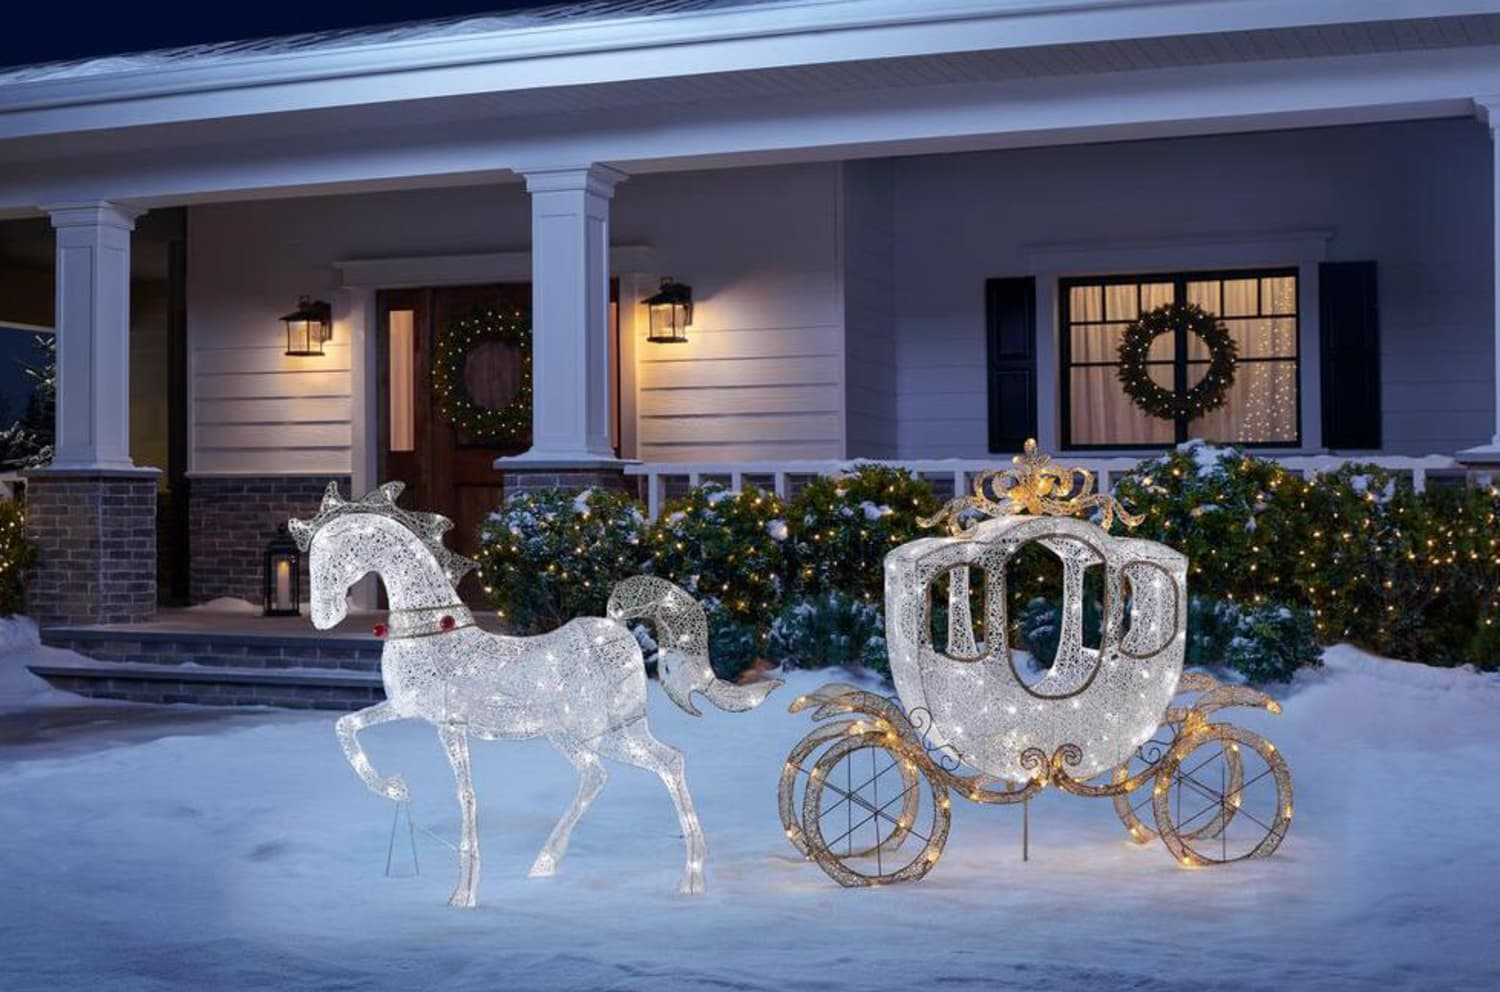 This Sparkling Carriage Will Make Your House Feel Like Disneyland This Holiday Season